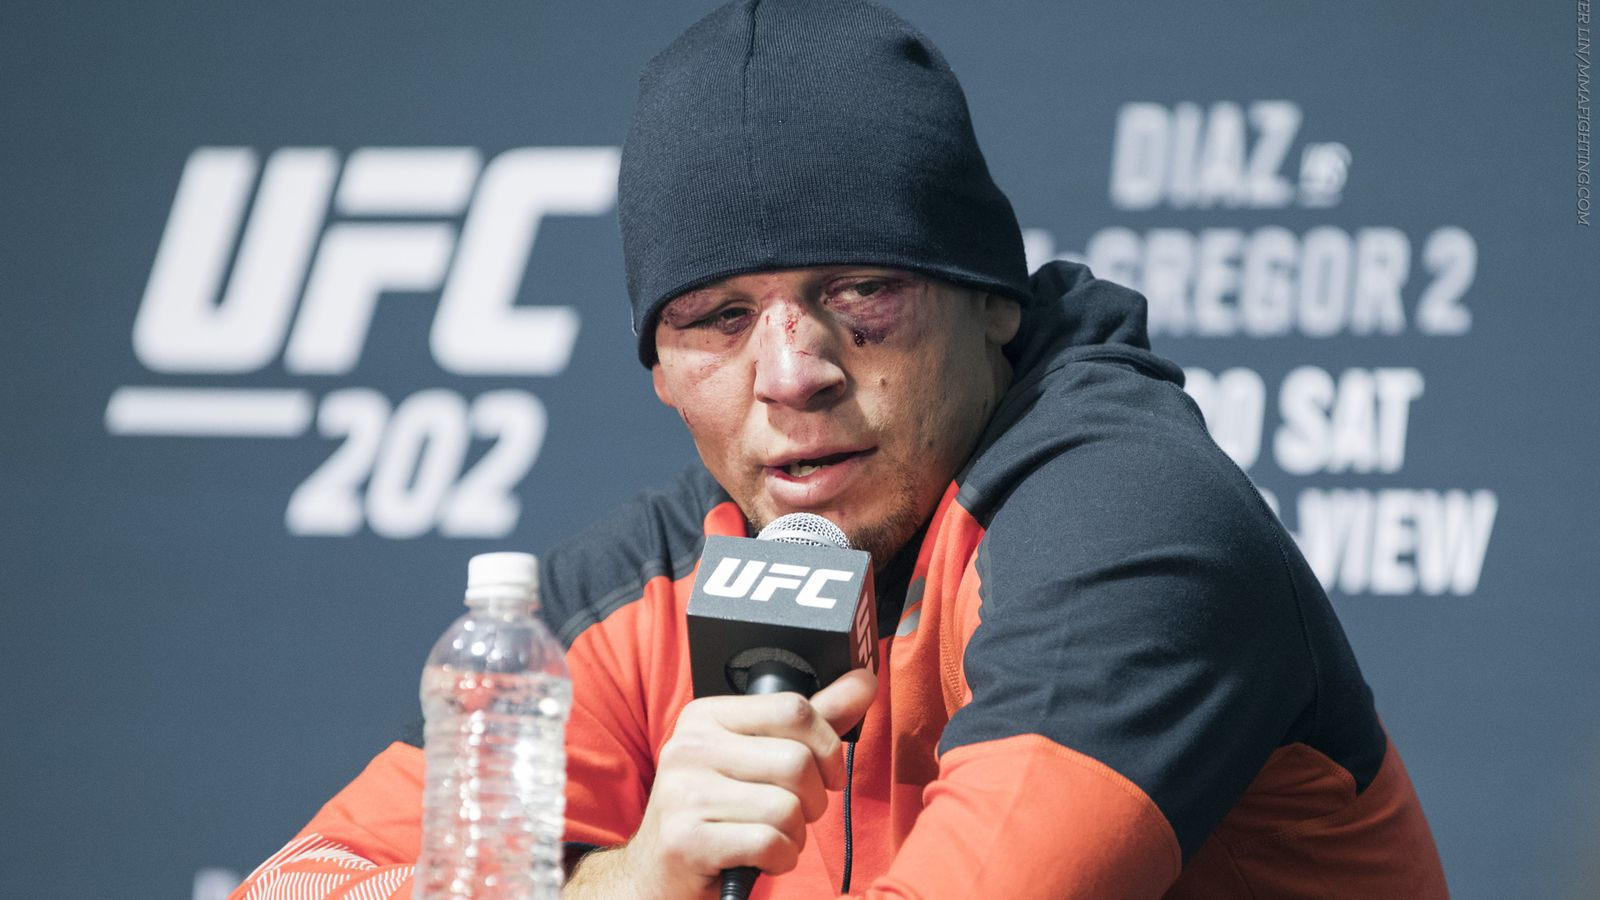 Nate Diaz UFC 202 post-fight press conference video - MMA ...